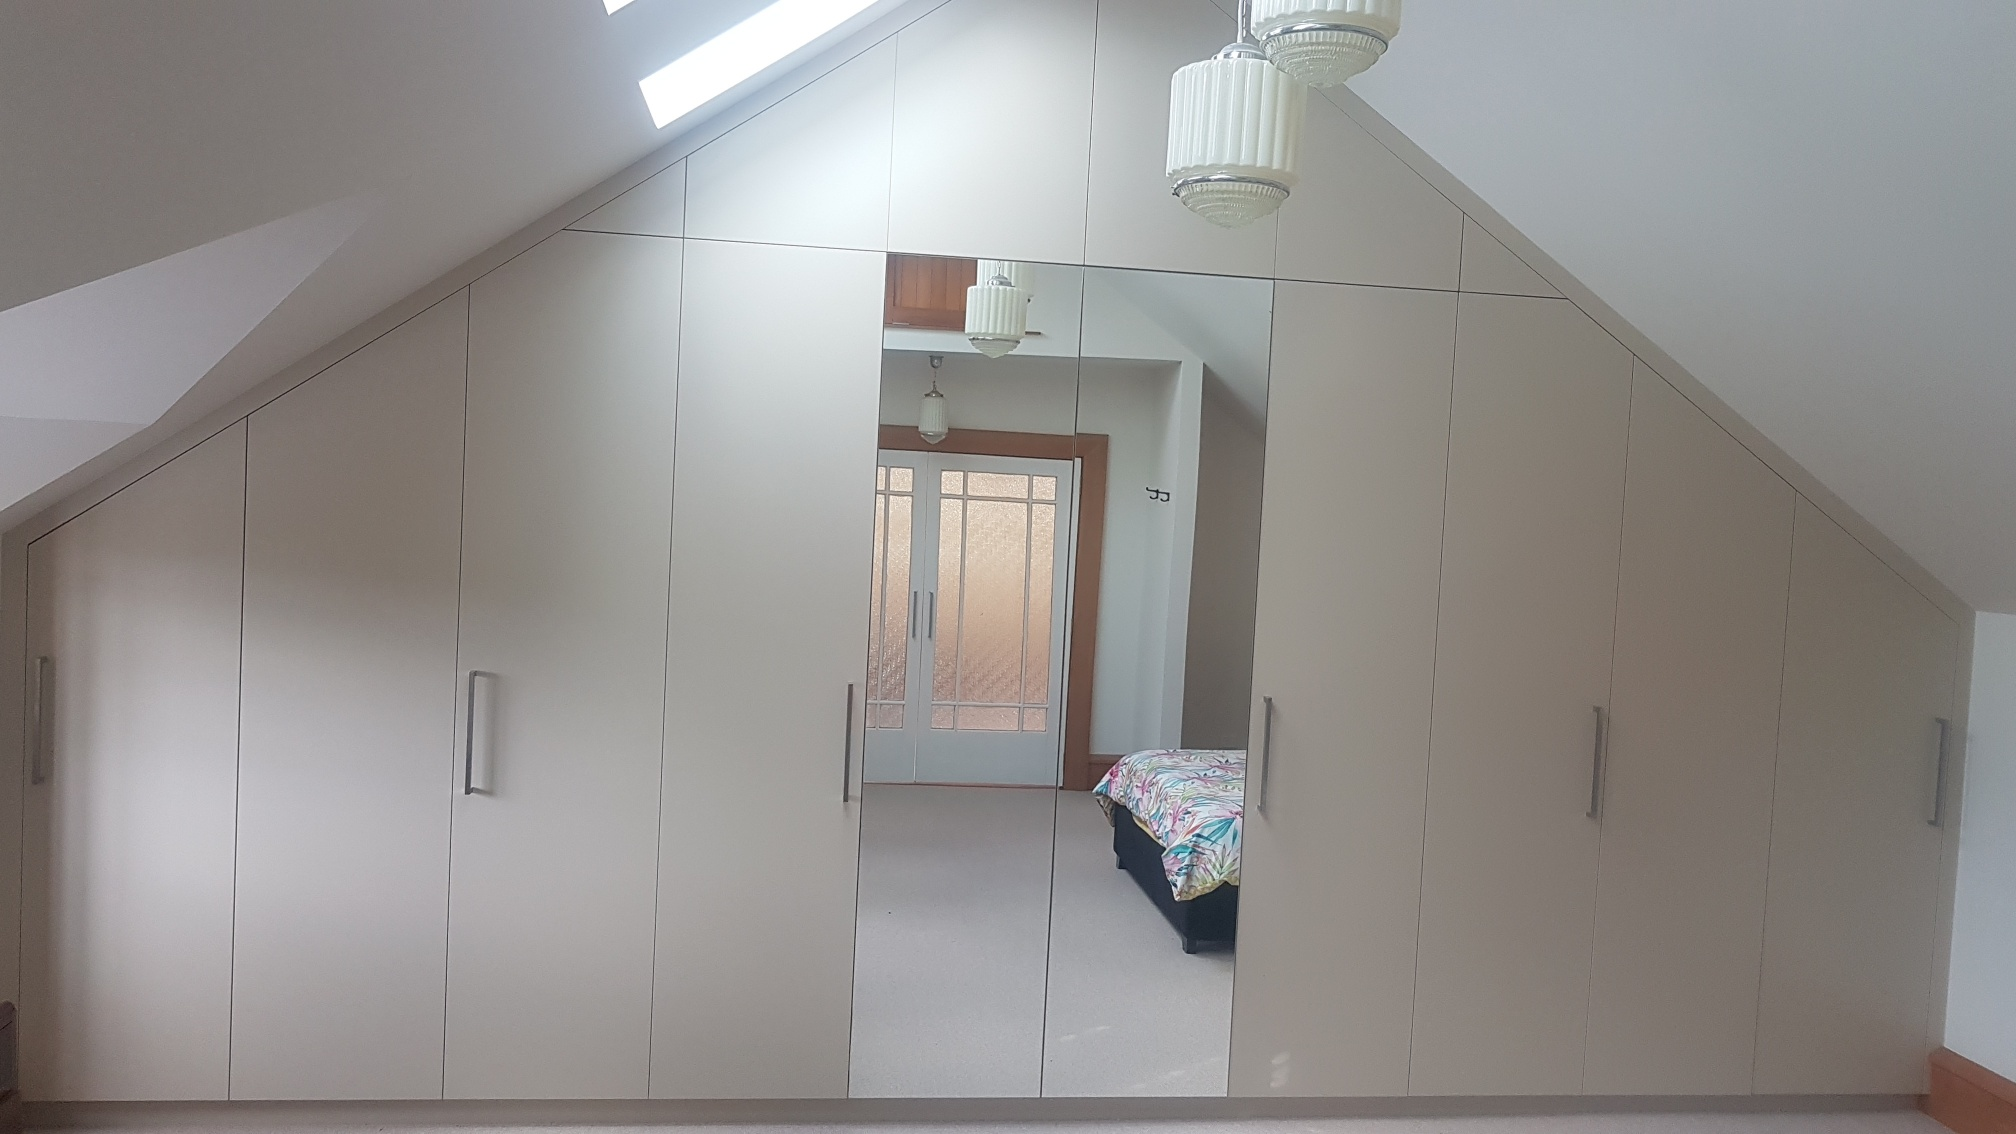 Large custom wardrobe in room with A-frame roof